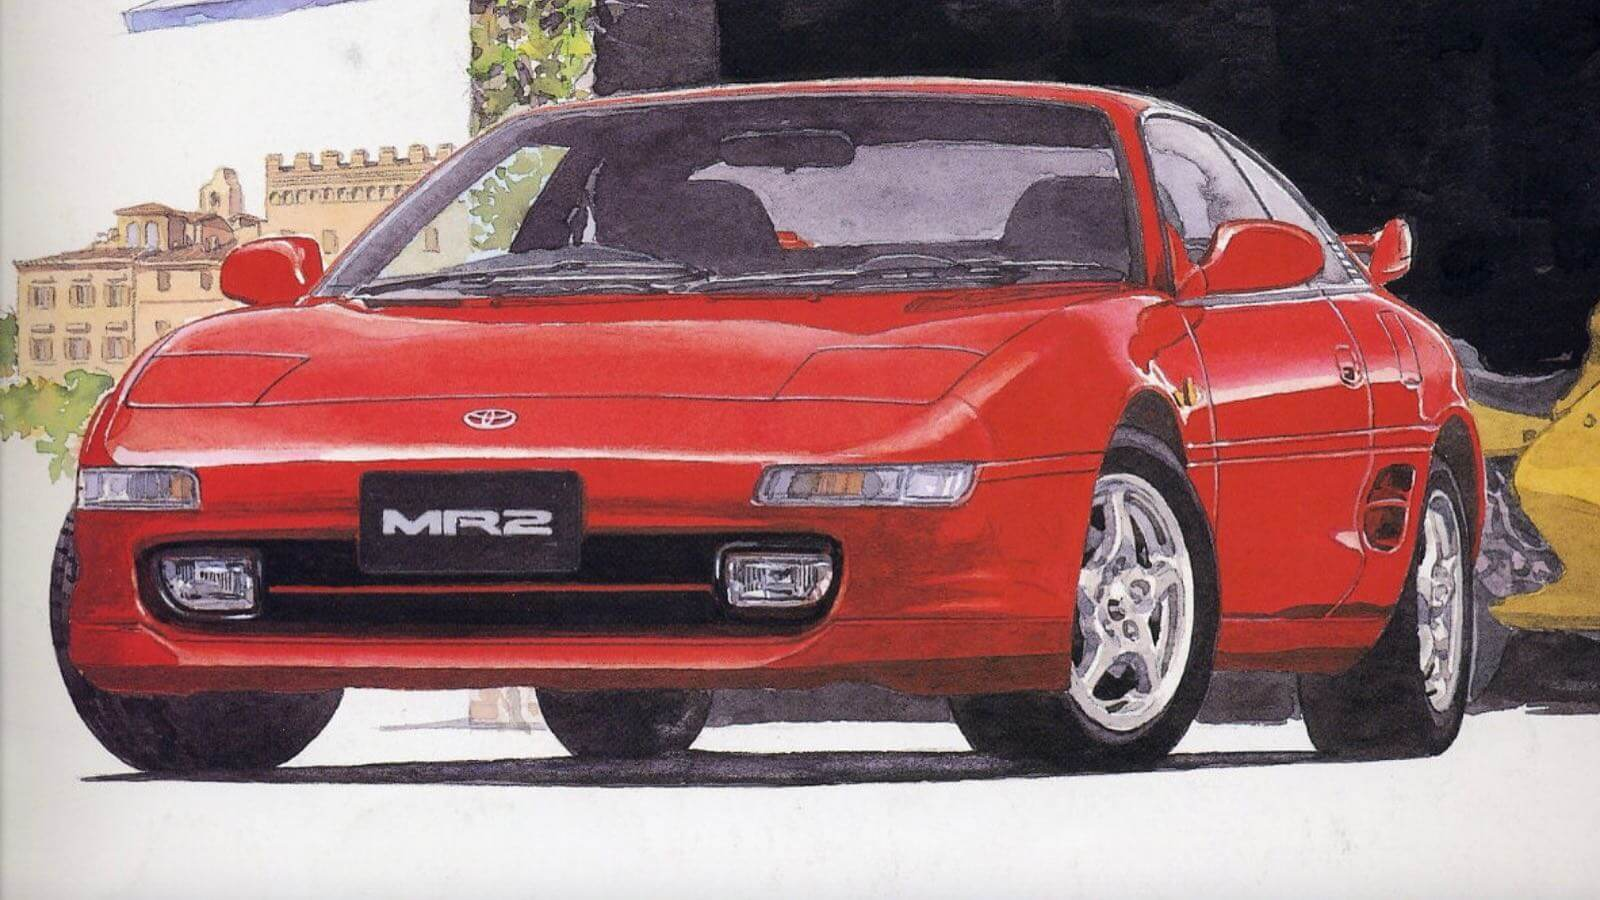 0156 MR2 Restore Plan Extra edition Eye catch image